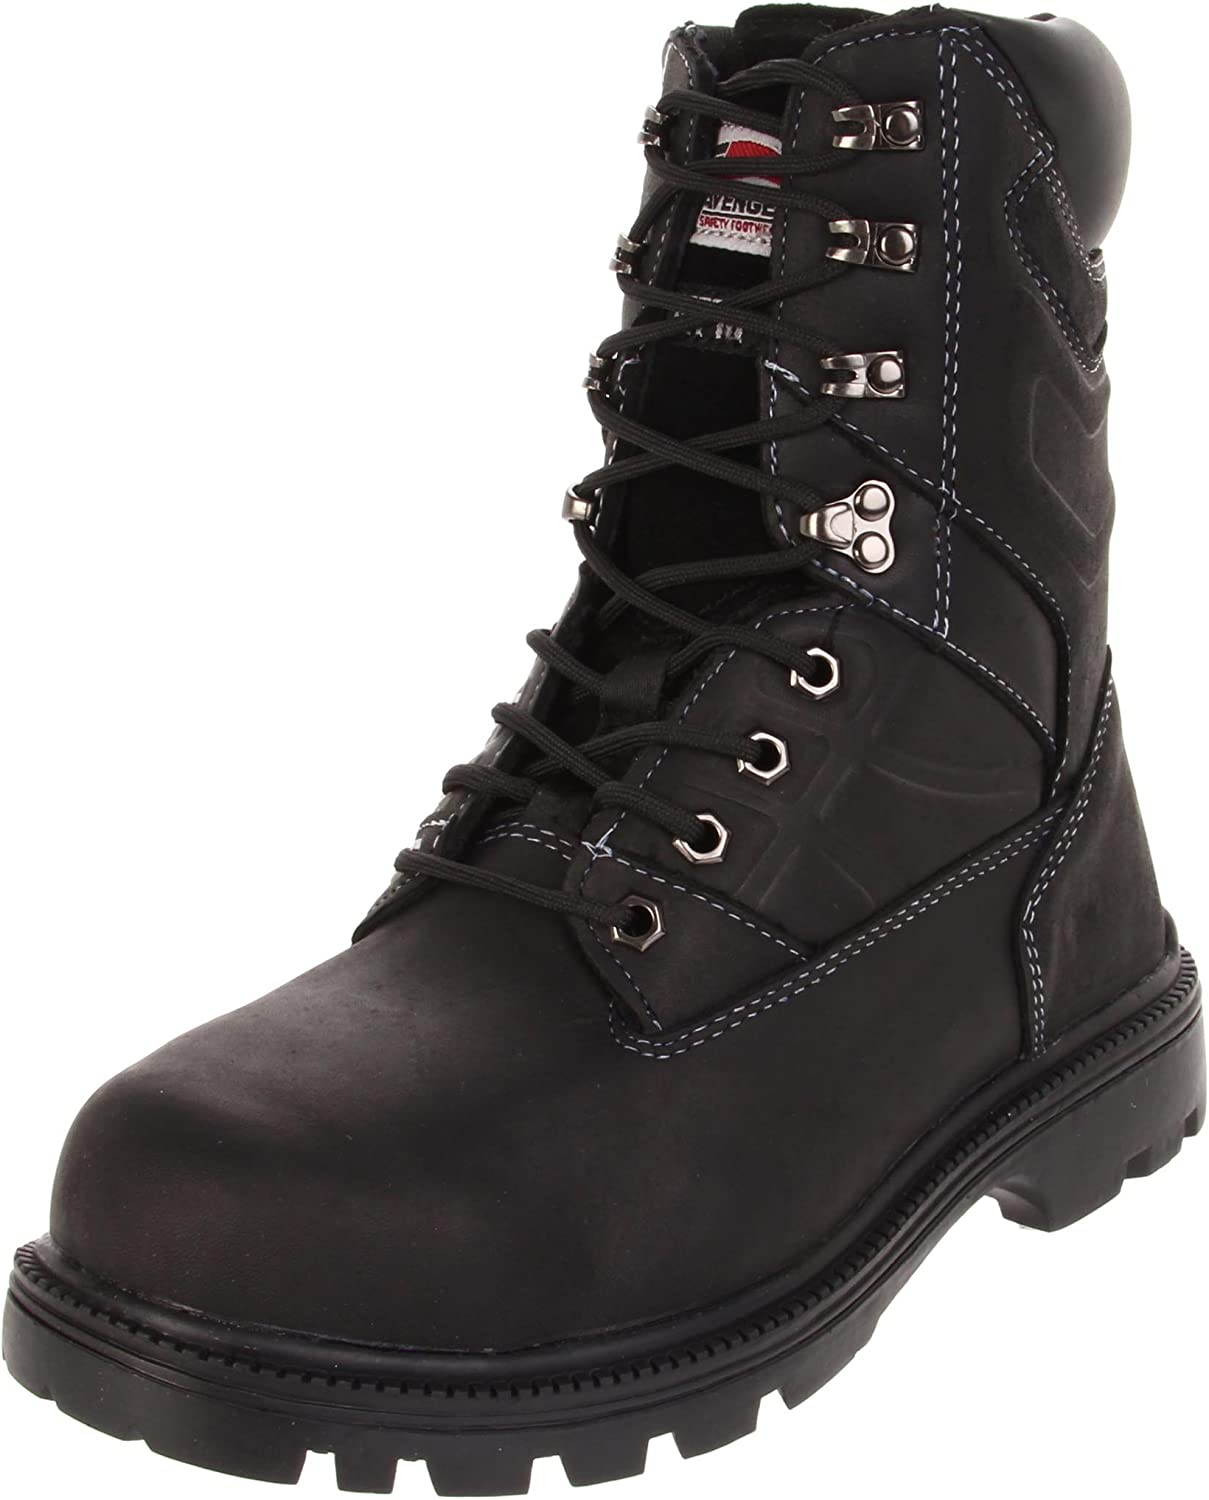 Avenger 7310 10  Leather  Safety Toe EH Internal Met Guard High Heat Outsole Work Boot